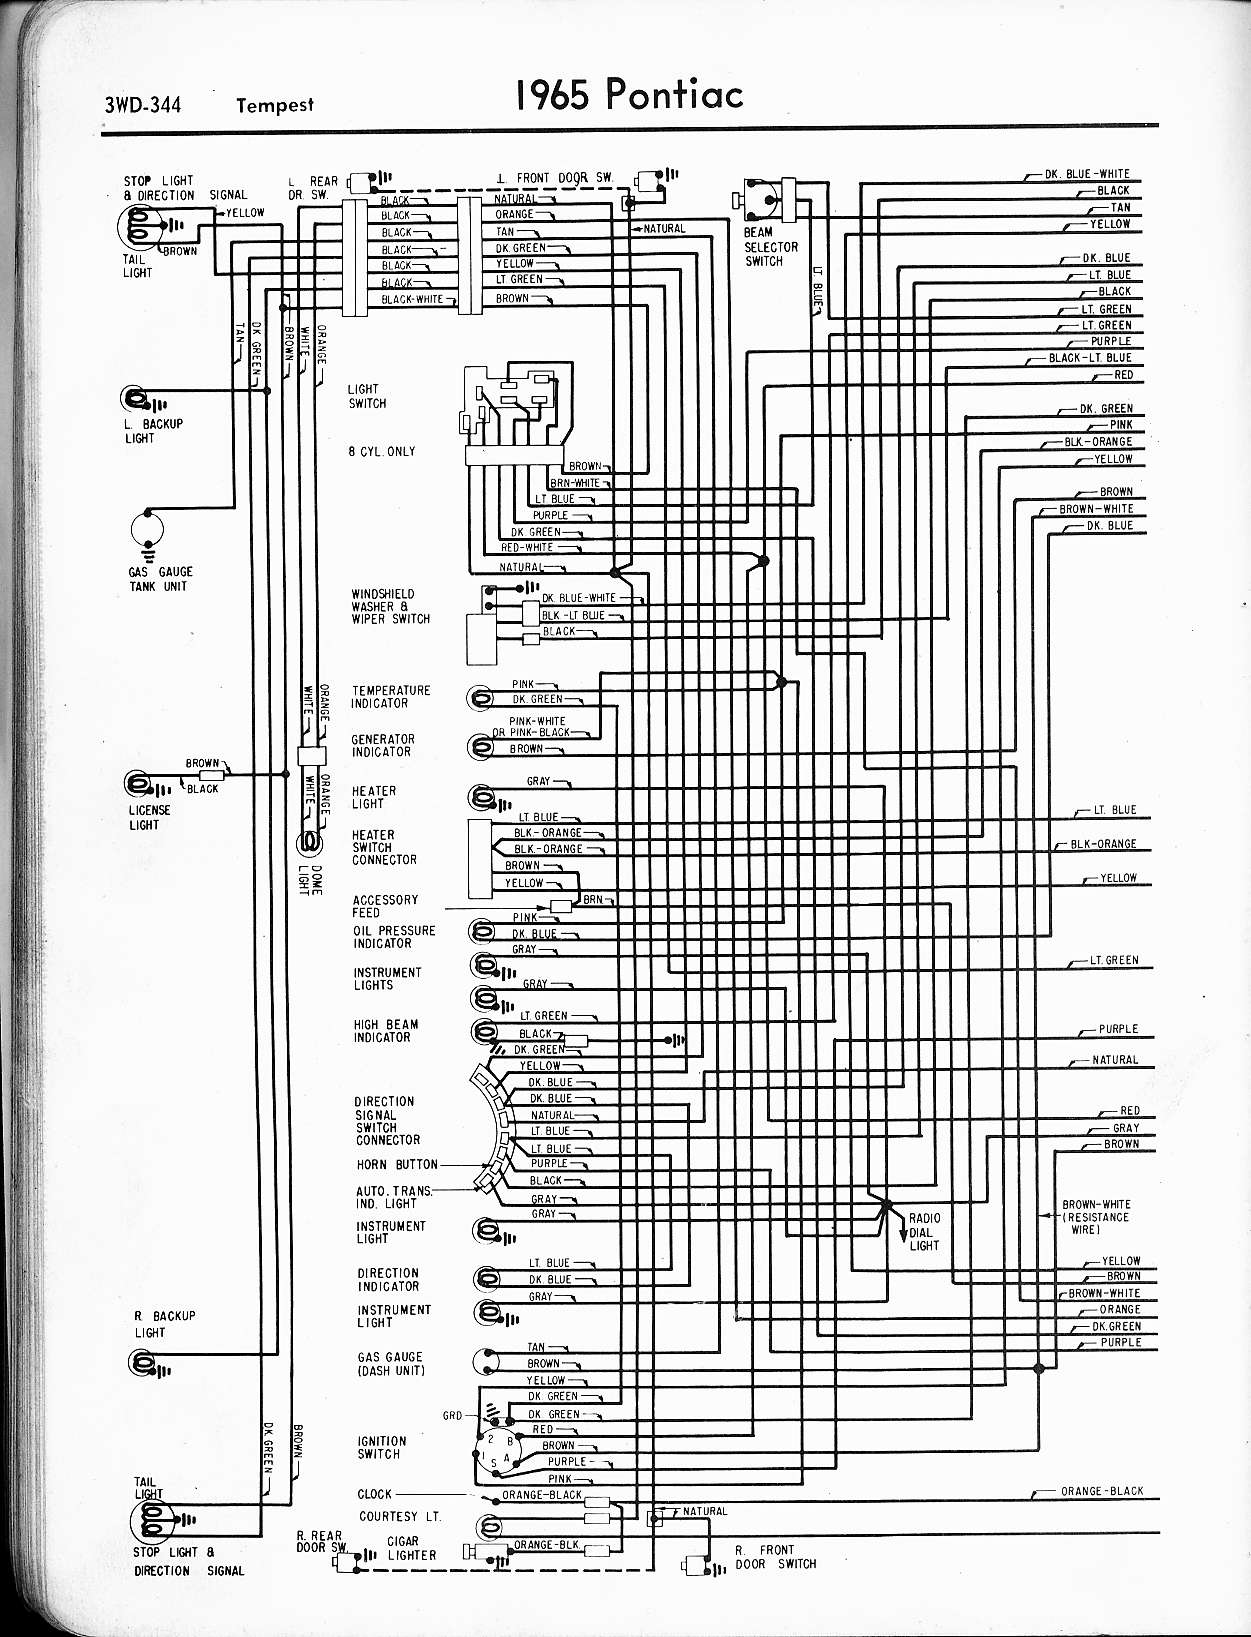 wallace racing wiring diagrams rh wallaceracing com wiring diagram for 2003  pontiac sunfire wiring diagram for pontiac vibe 2003